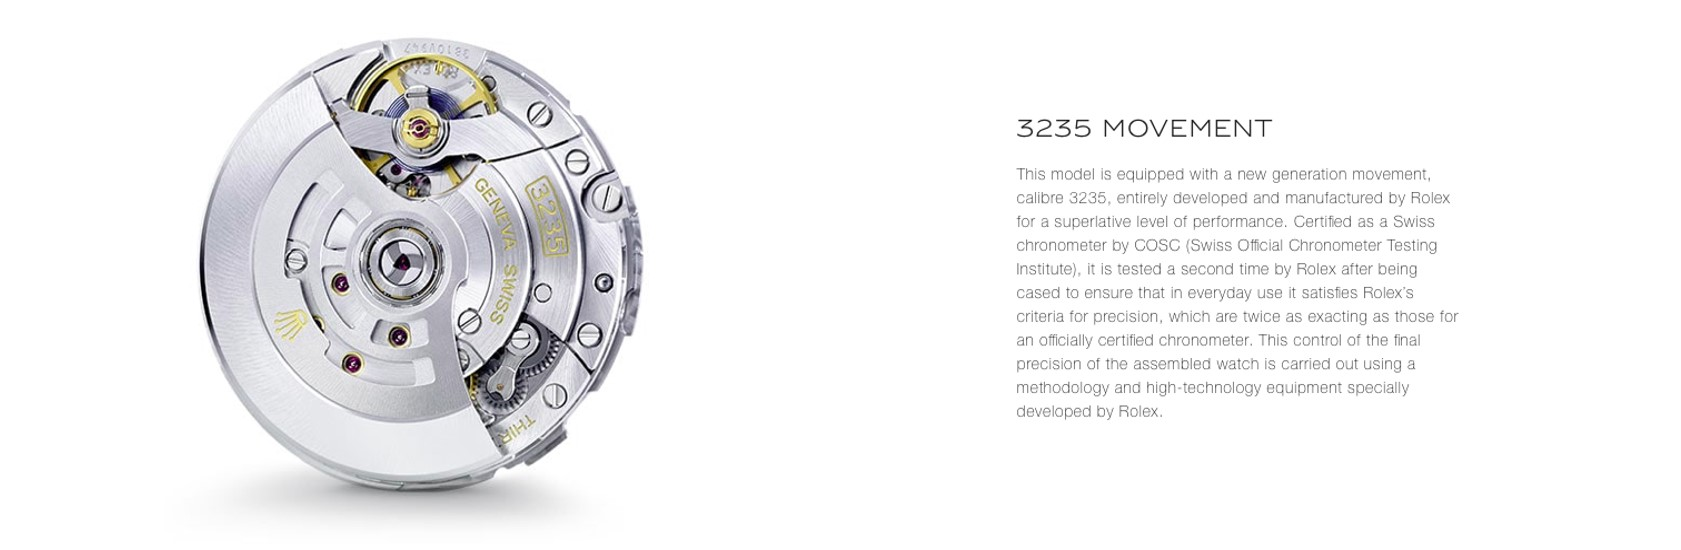 Rolex online product description